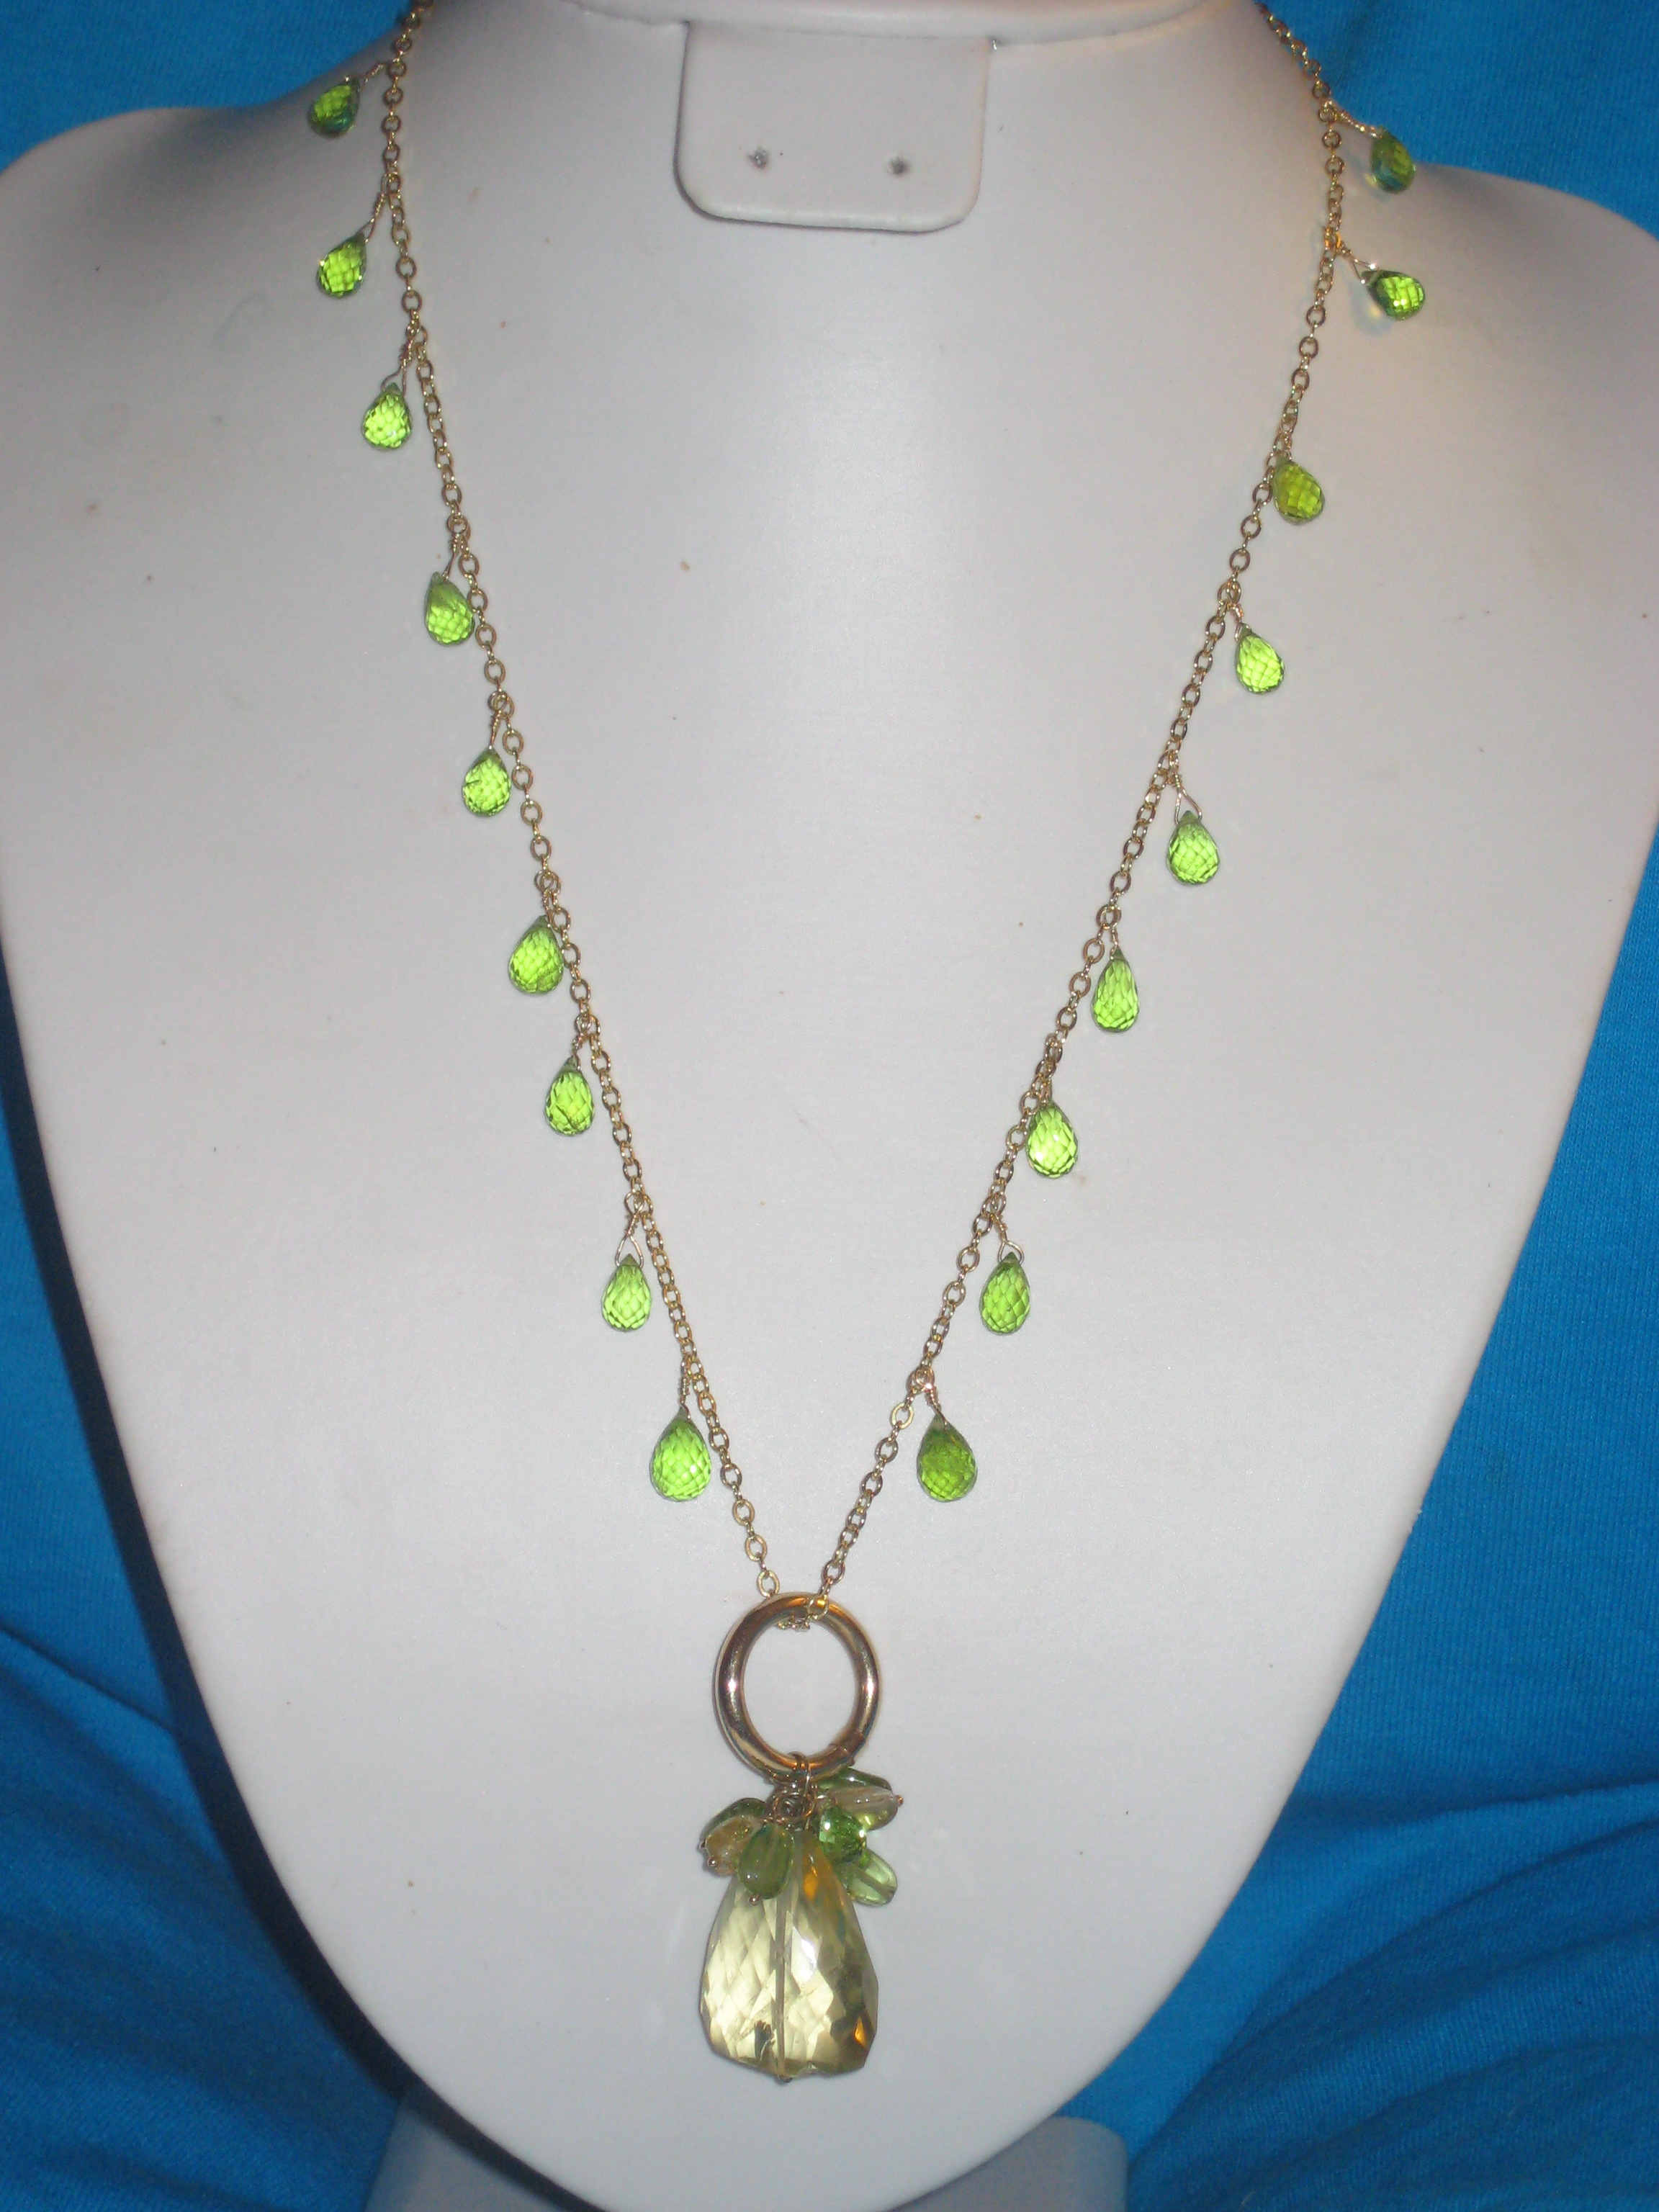 large citrine drop necklace with peridot drops on 18 carat chain